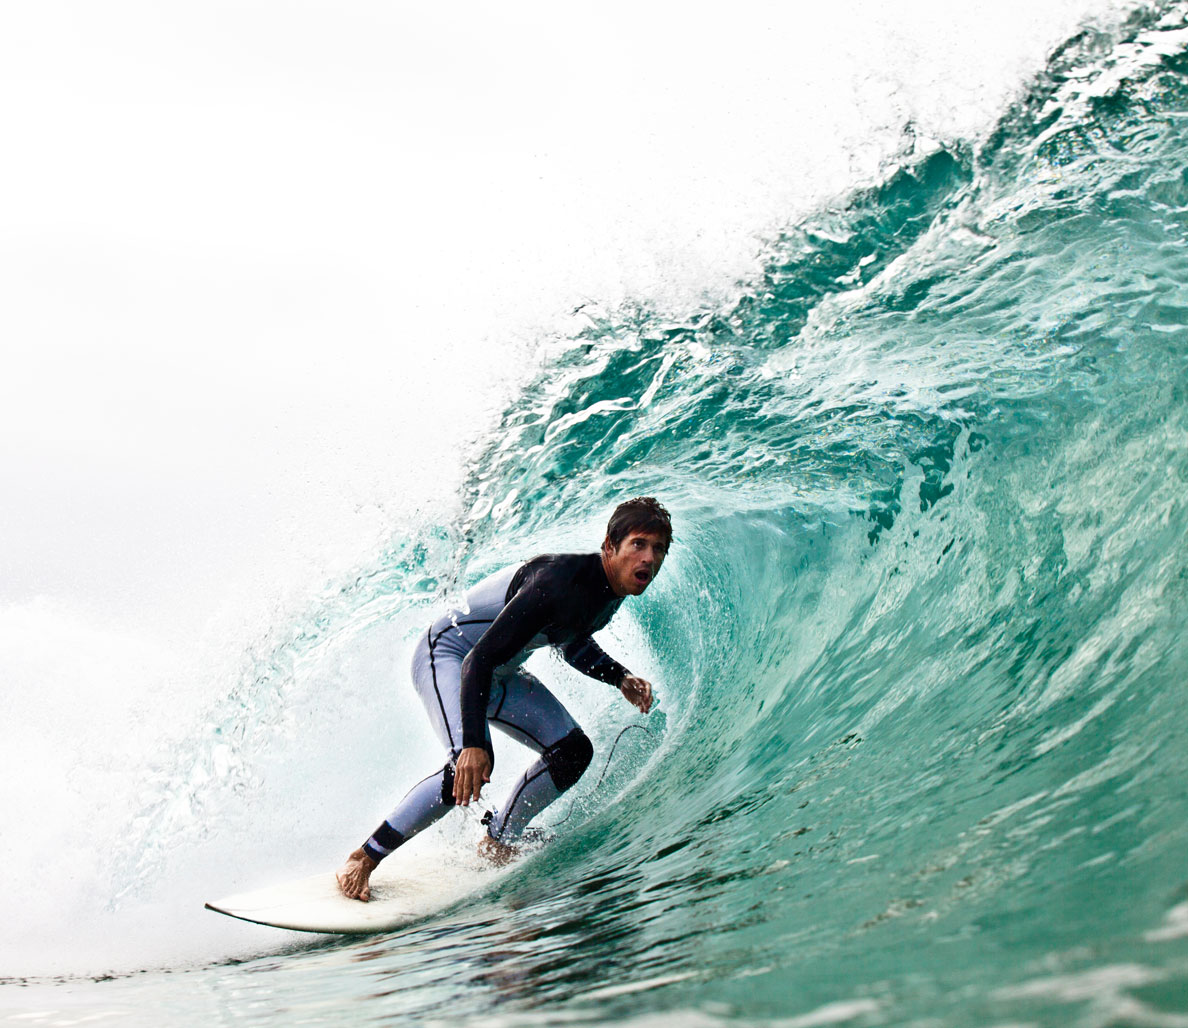 Spring Sports Guide: The Surfer's Performance Workout